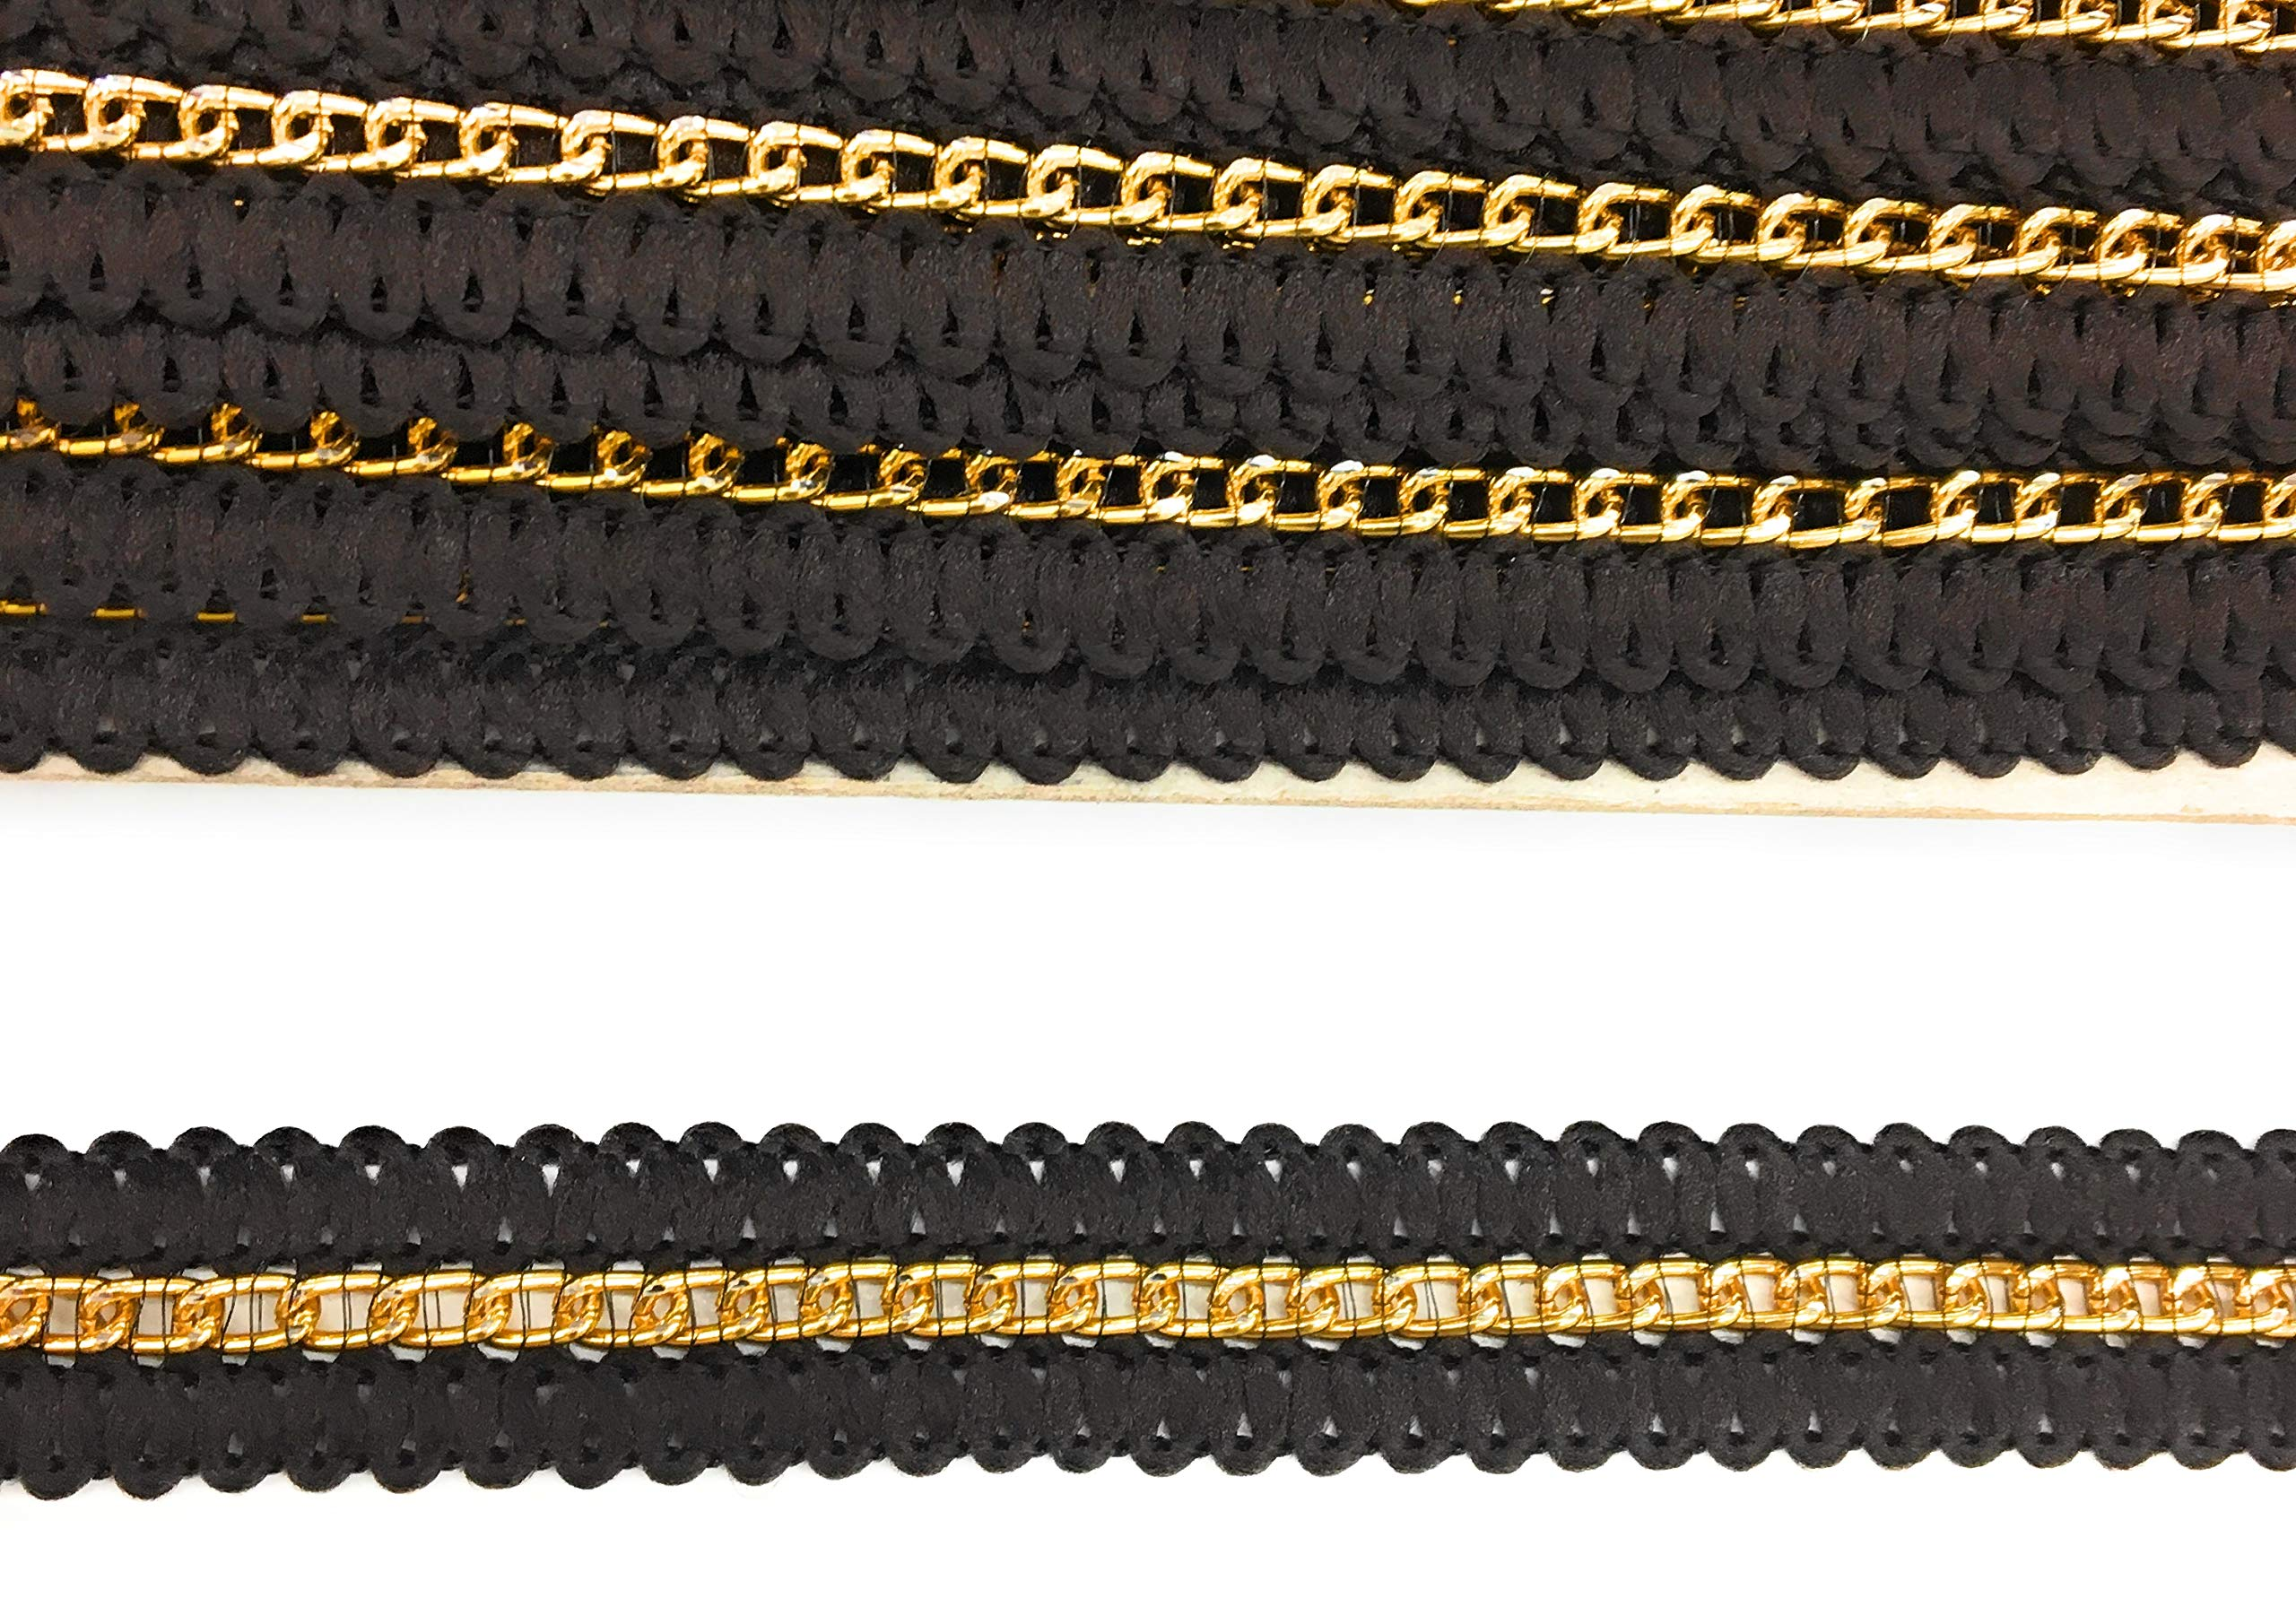 50 Yards Brown Braided with Gold Chain Center - 3/4'' (17mm) x 50 Yds Sewing,Quilting Trimming - Brown gimp by Katz Trimming / Trims Unlimited